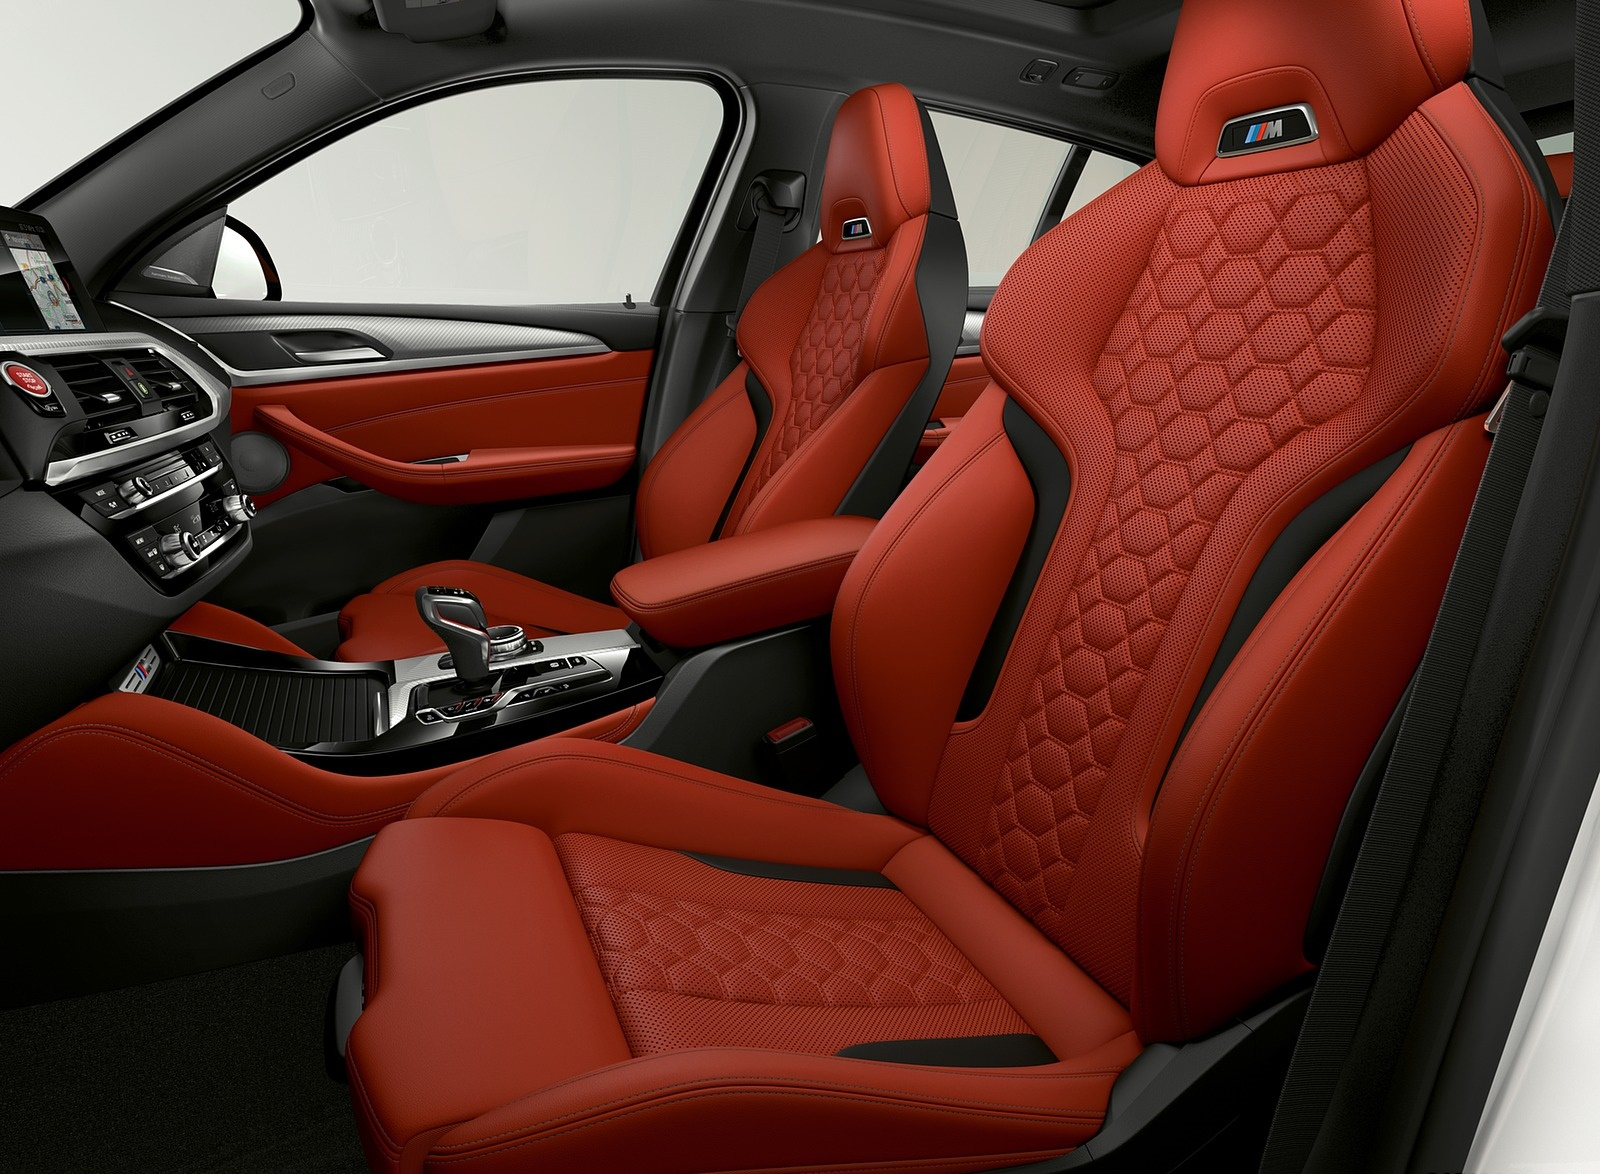 2020 Bmw X4 M Interior Front Seats Wallpapers 83 Newcarcars